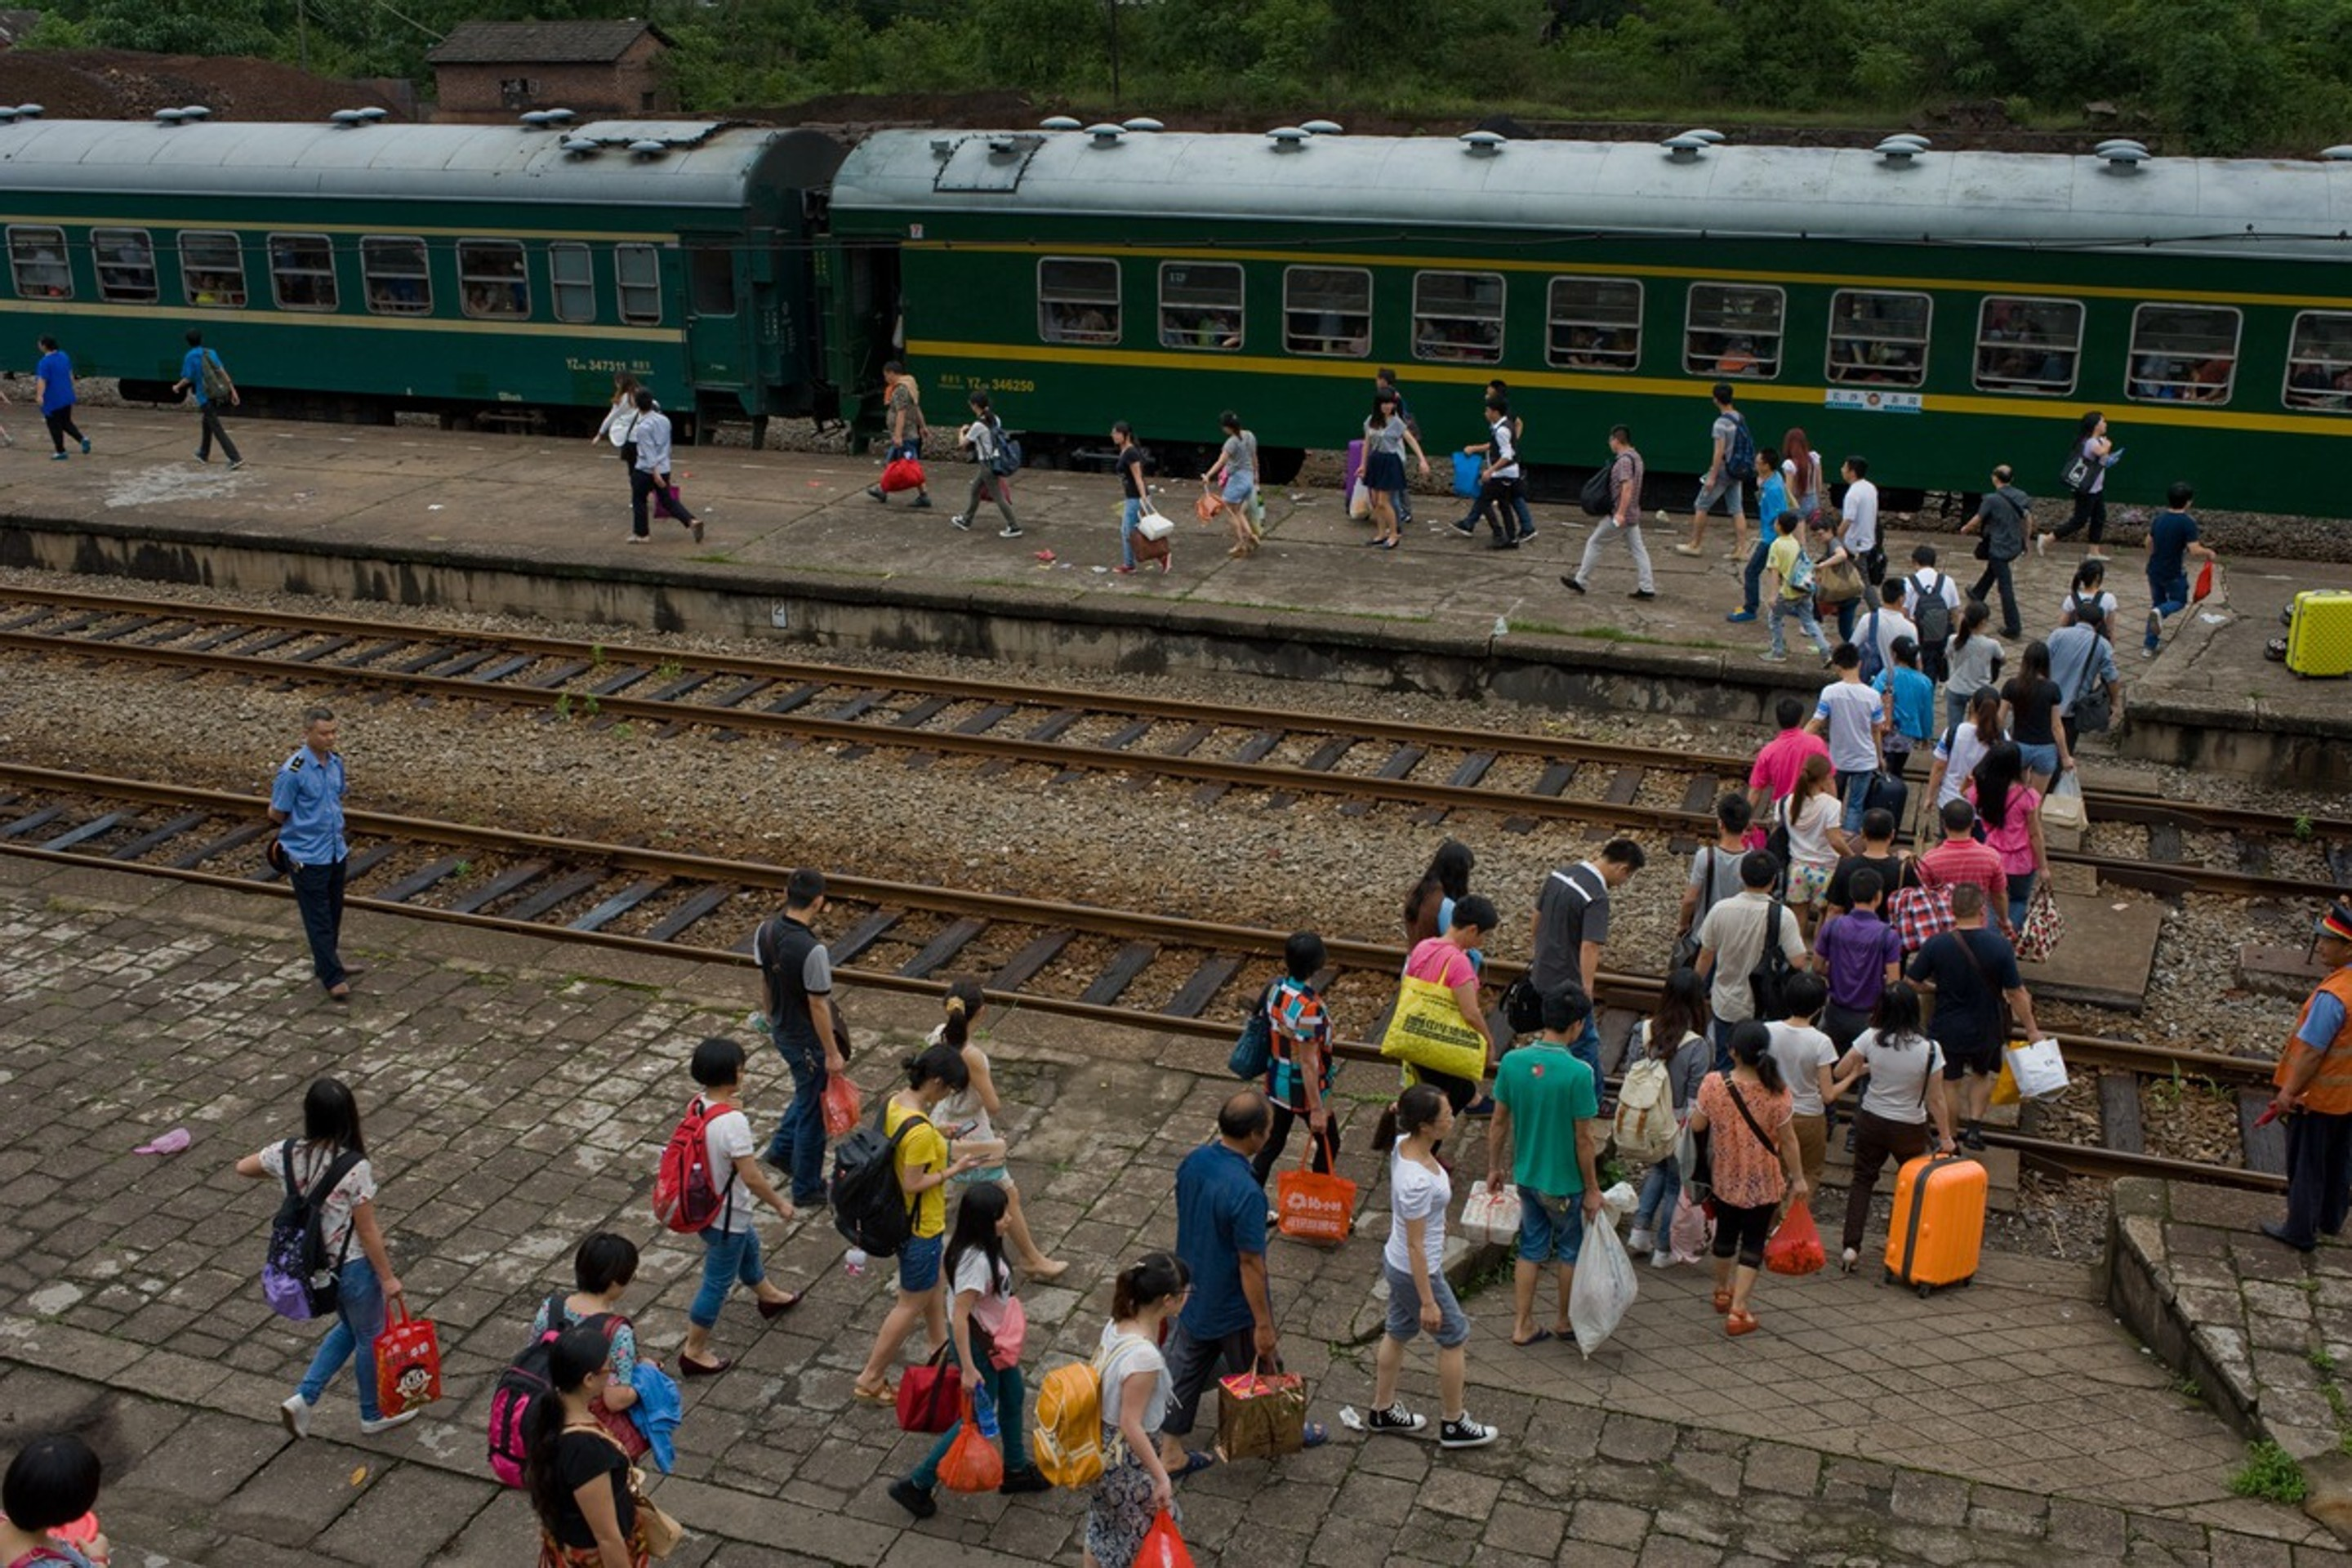 Passengers walk on the tracks to catch train No 2368, which runs from Chaling to Changsha, in Hunan province, in June 2014. Photo: Qian Haifeng